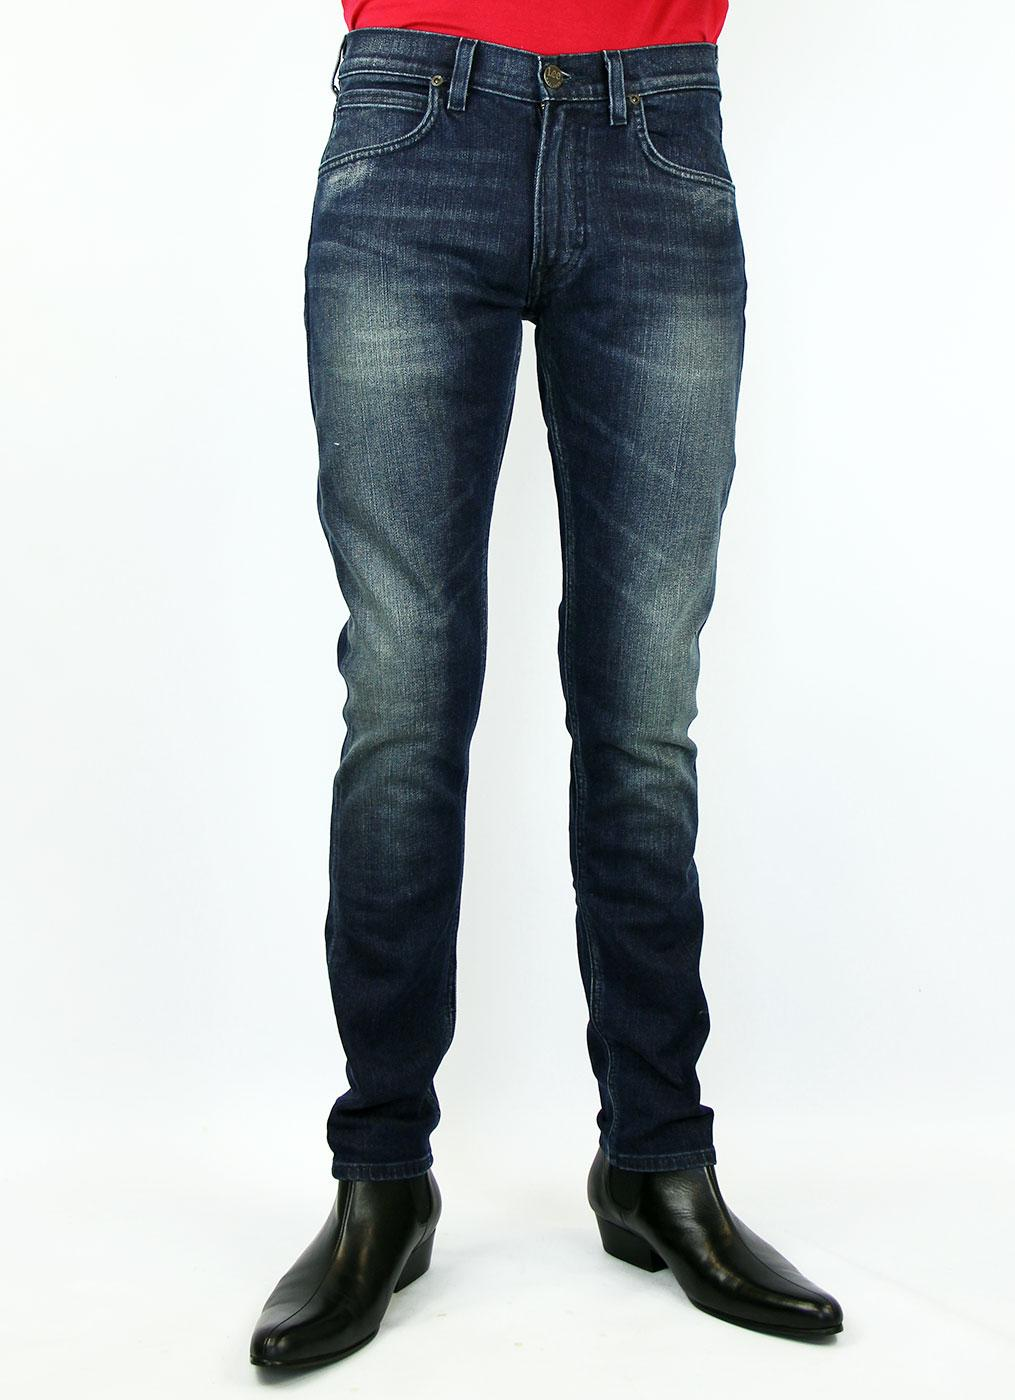 Luke LEE Jeans Retro Slim Tapered Indie Jeans DR